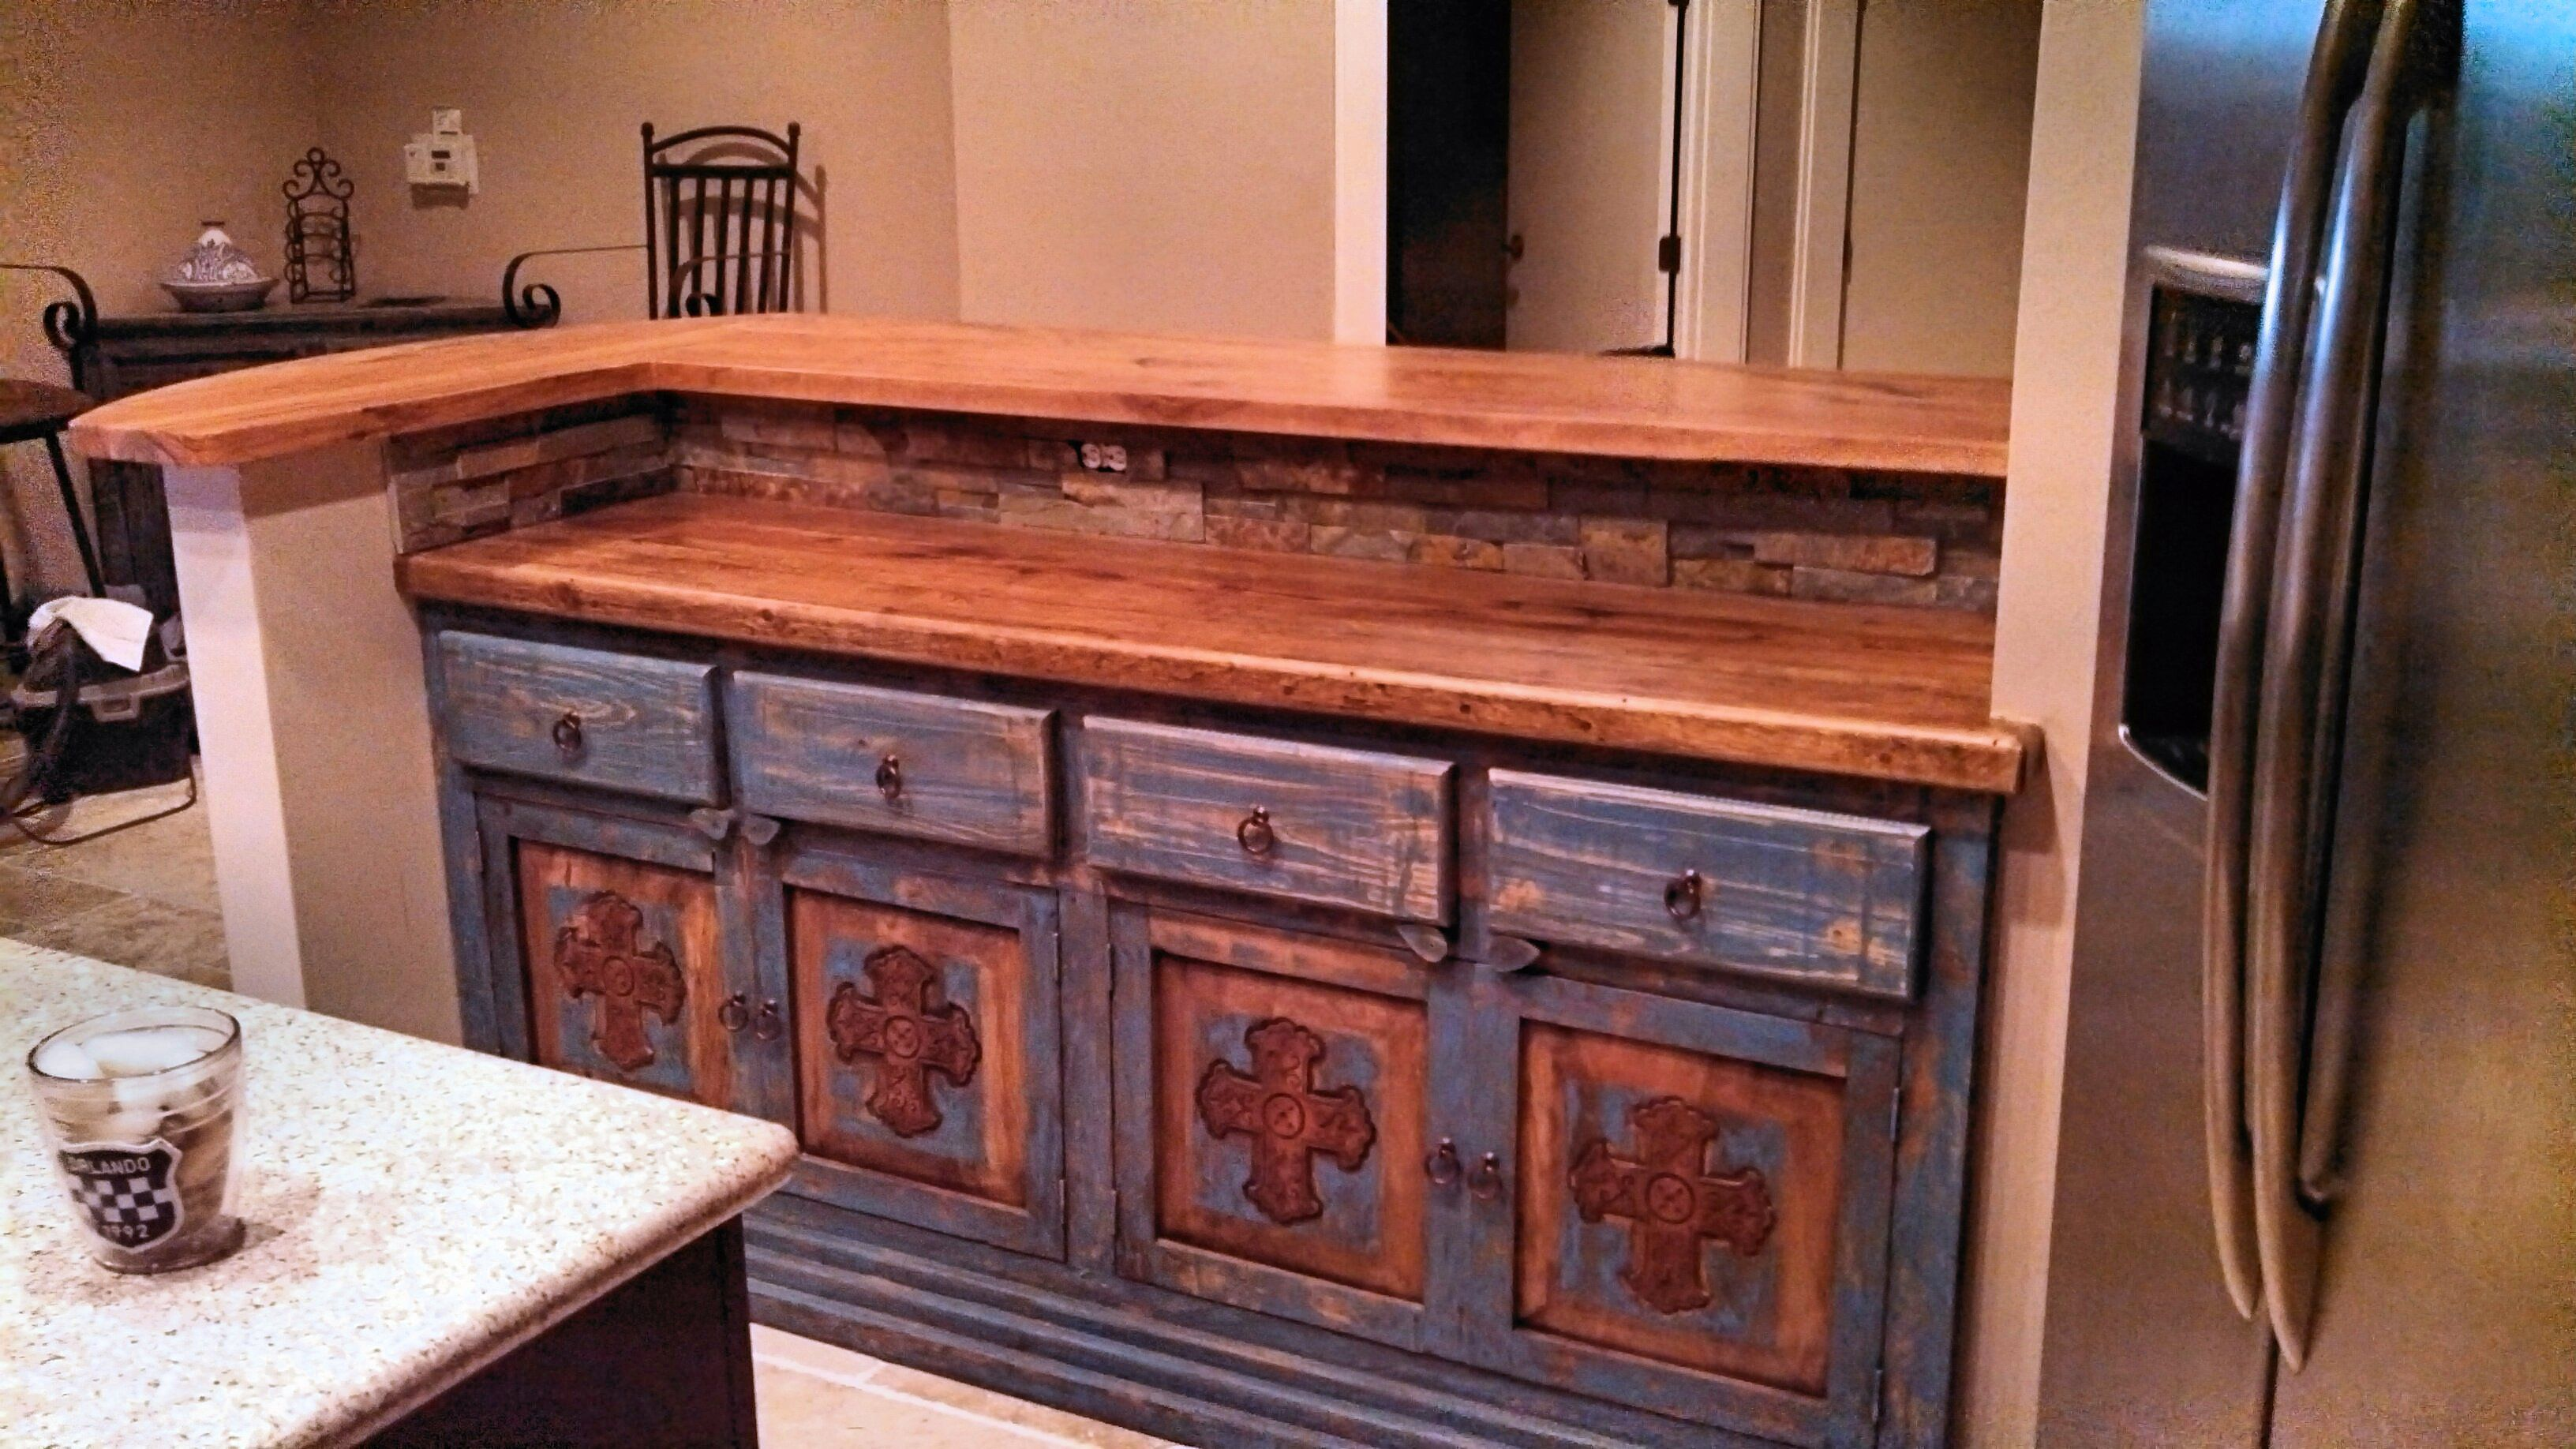 Marvelous Tx Pecan Face Grain Custom Wood Countertop And Bar Top.